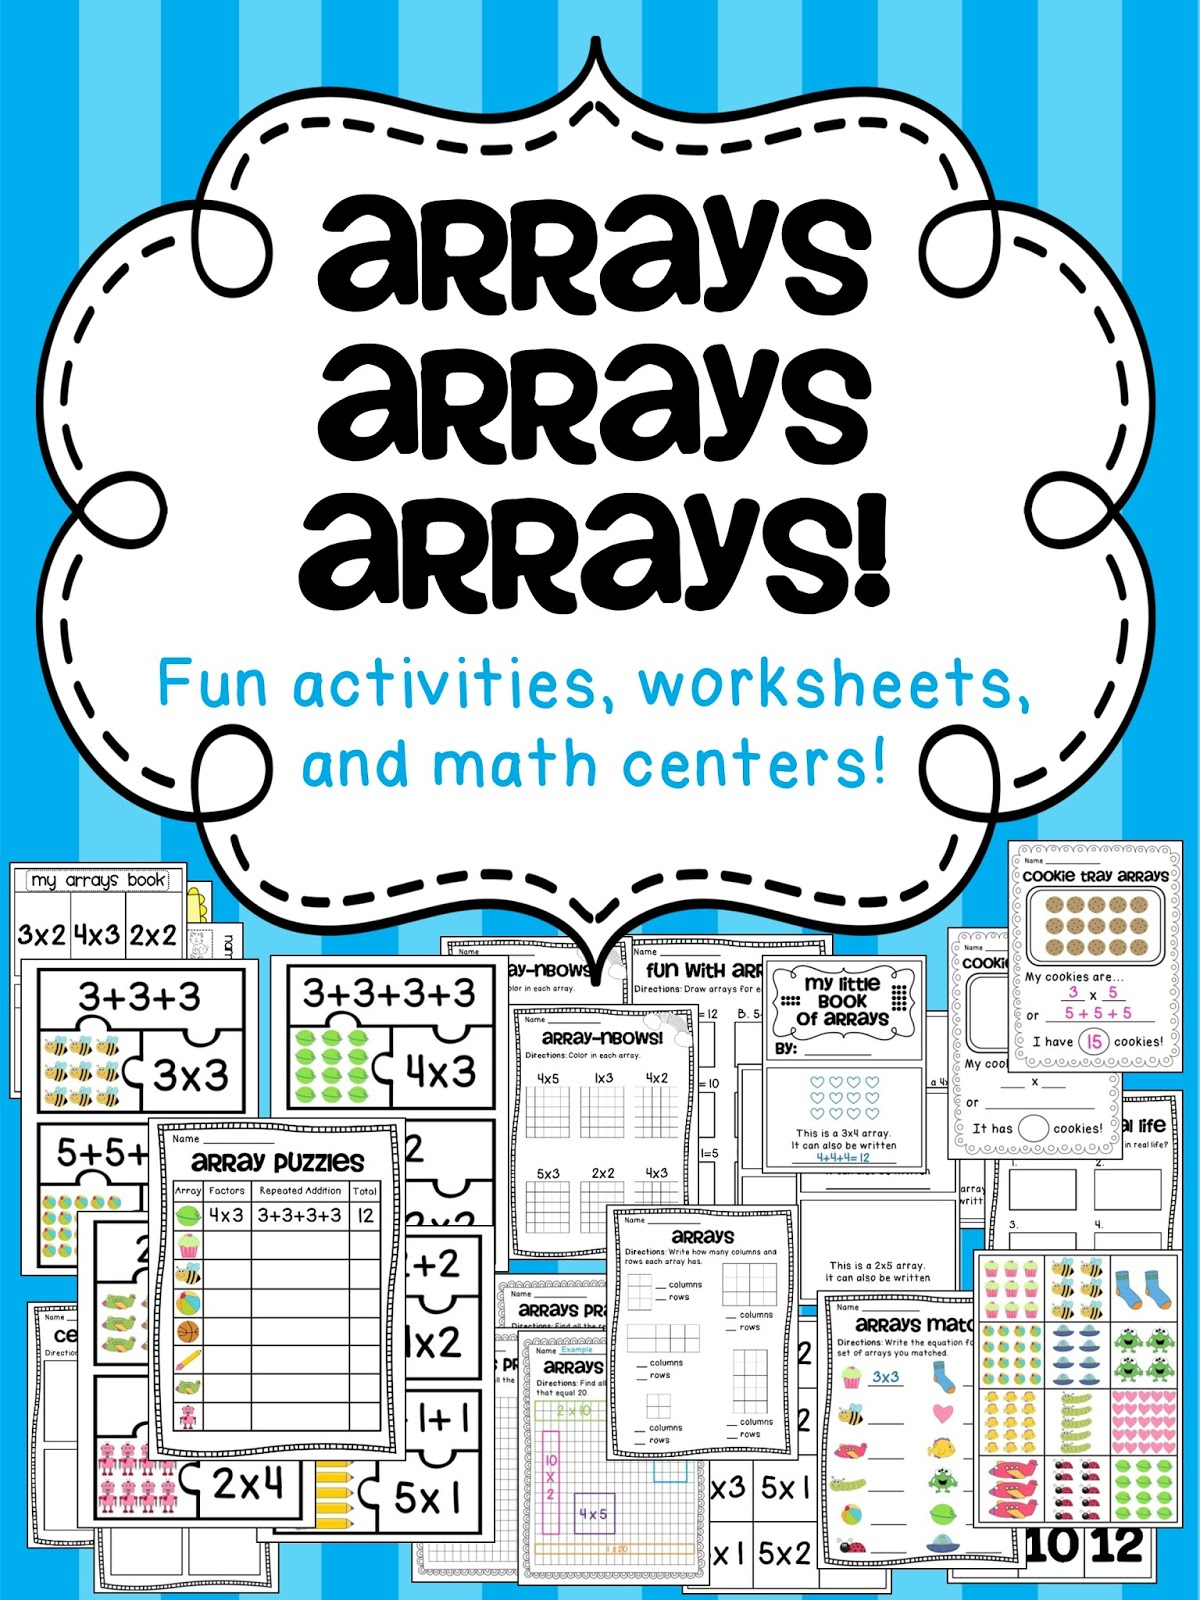 Miss Giraffe 39 S Class How To Teach Arrays